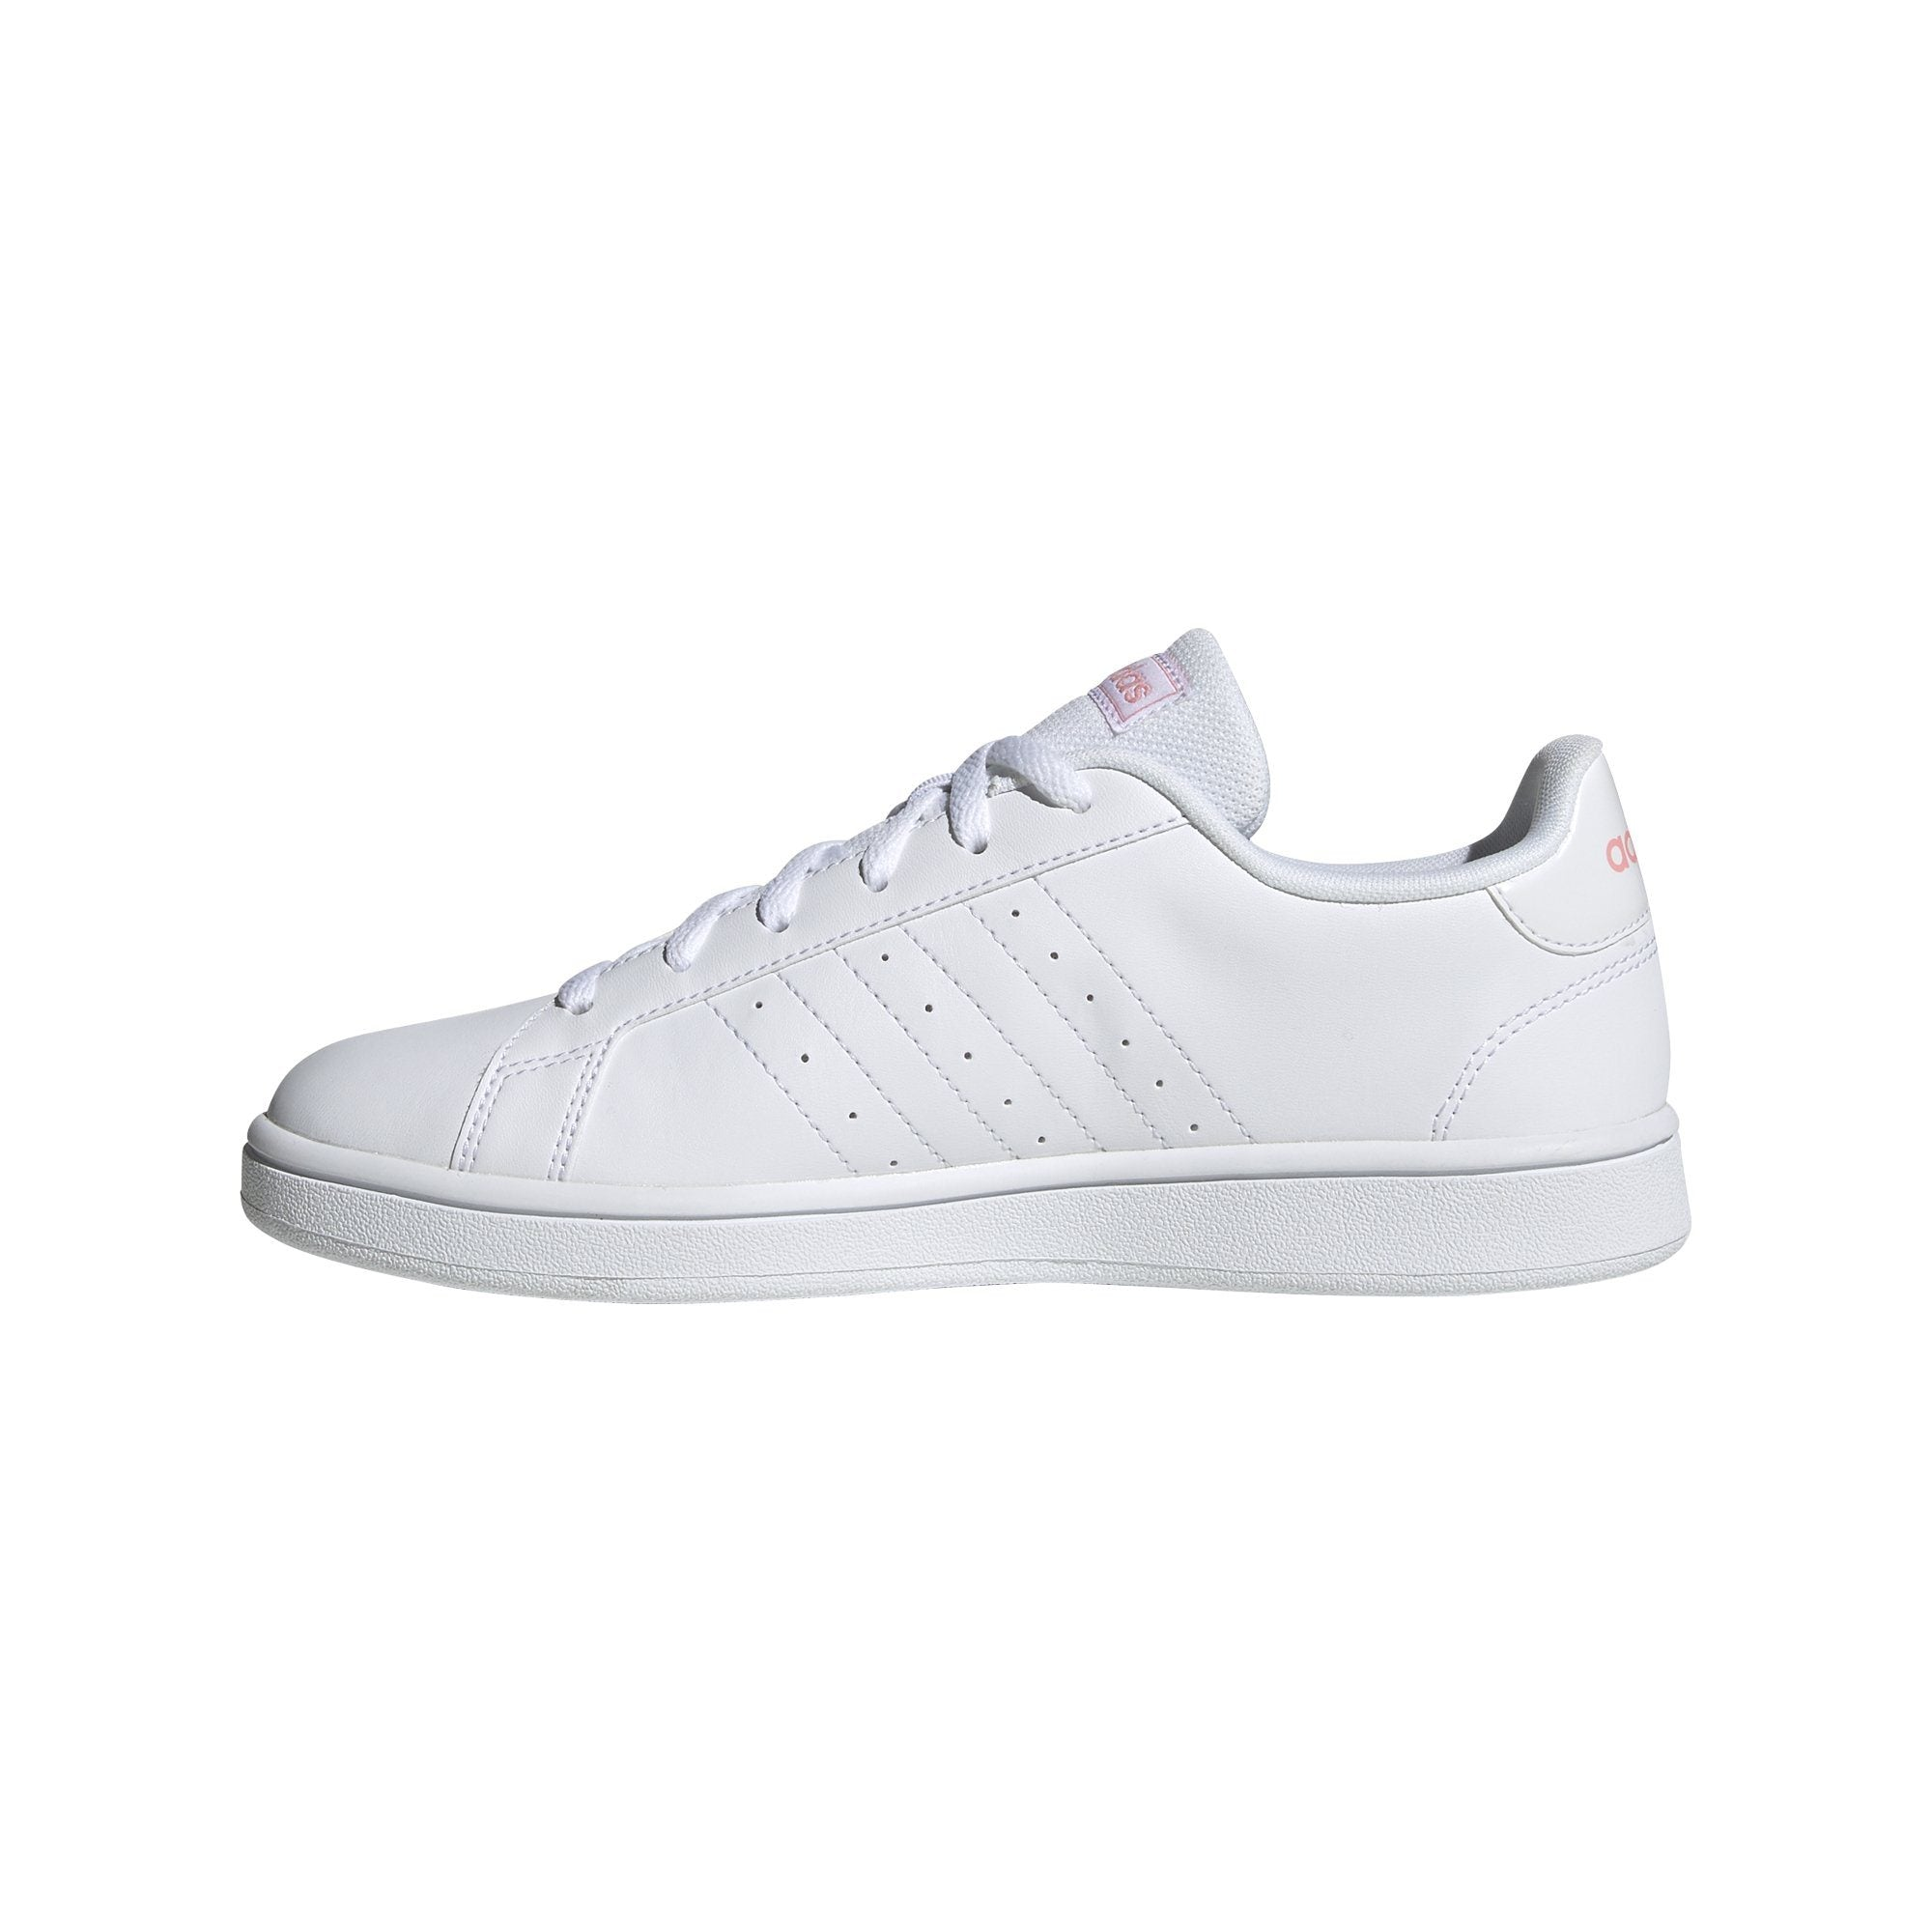 Adidas Womens Grand Court Base Shoes - Ftwr White/Glory Pink/Ftwr White SP-Footwear-Womens Adidas